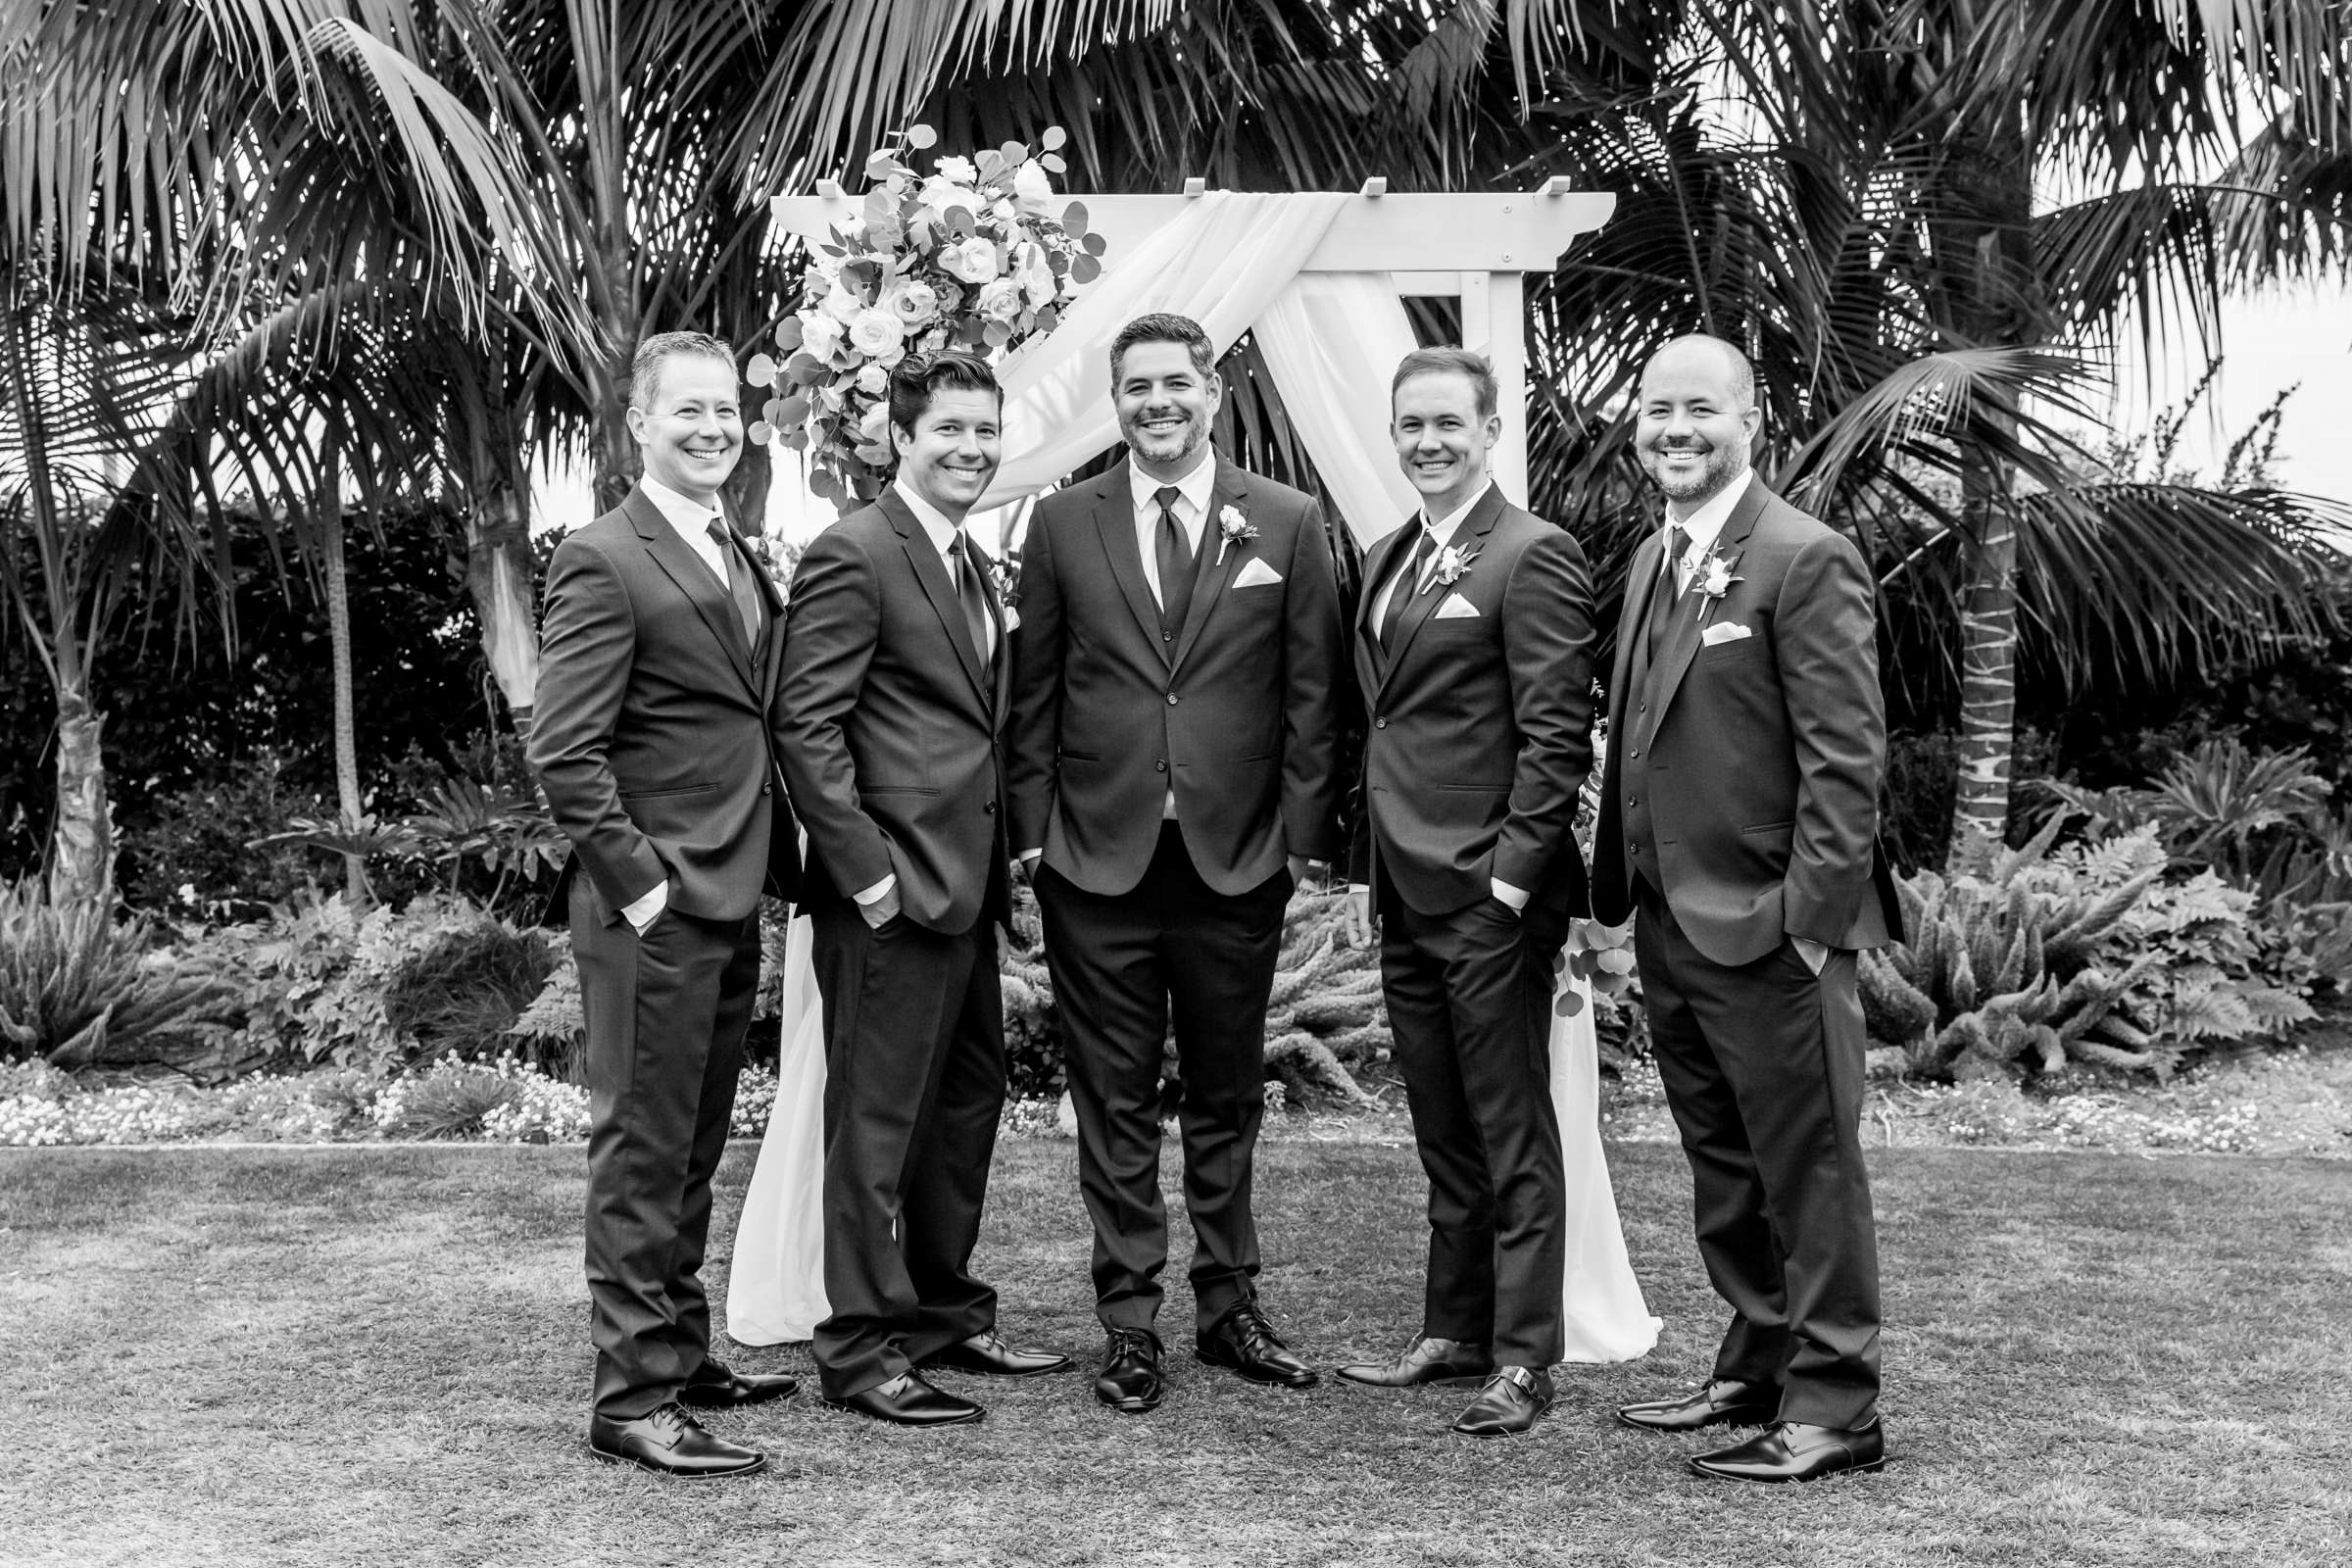 Cape Rey Carlsbad, A Hilton Resort Wedding, Michelle and Justin Wedding Photo #54 by True Photography